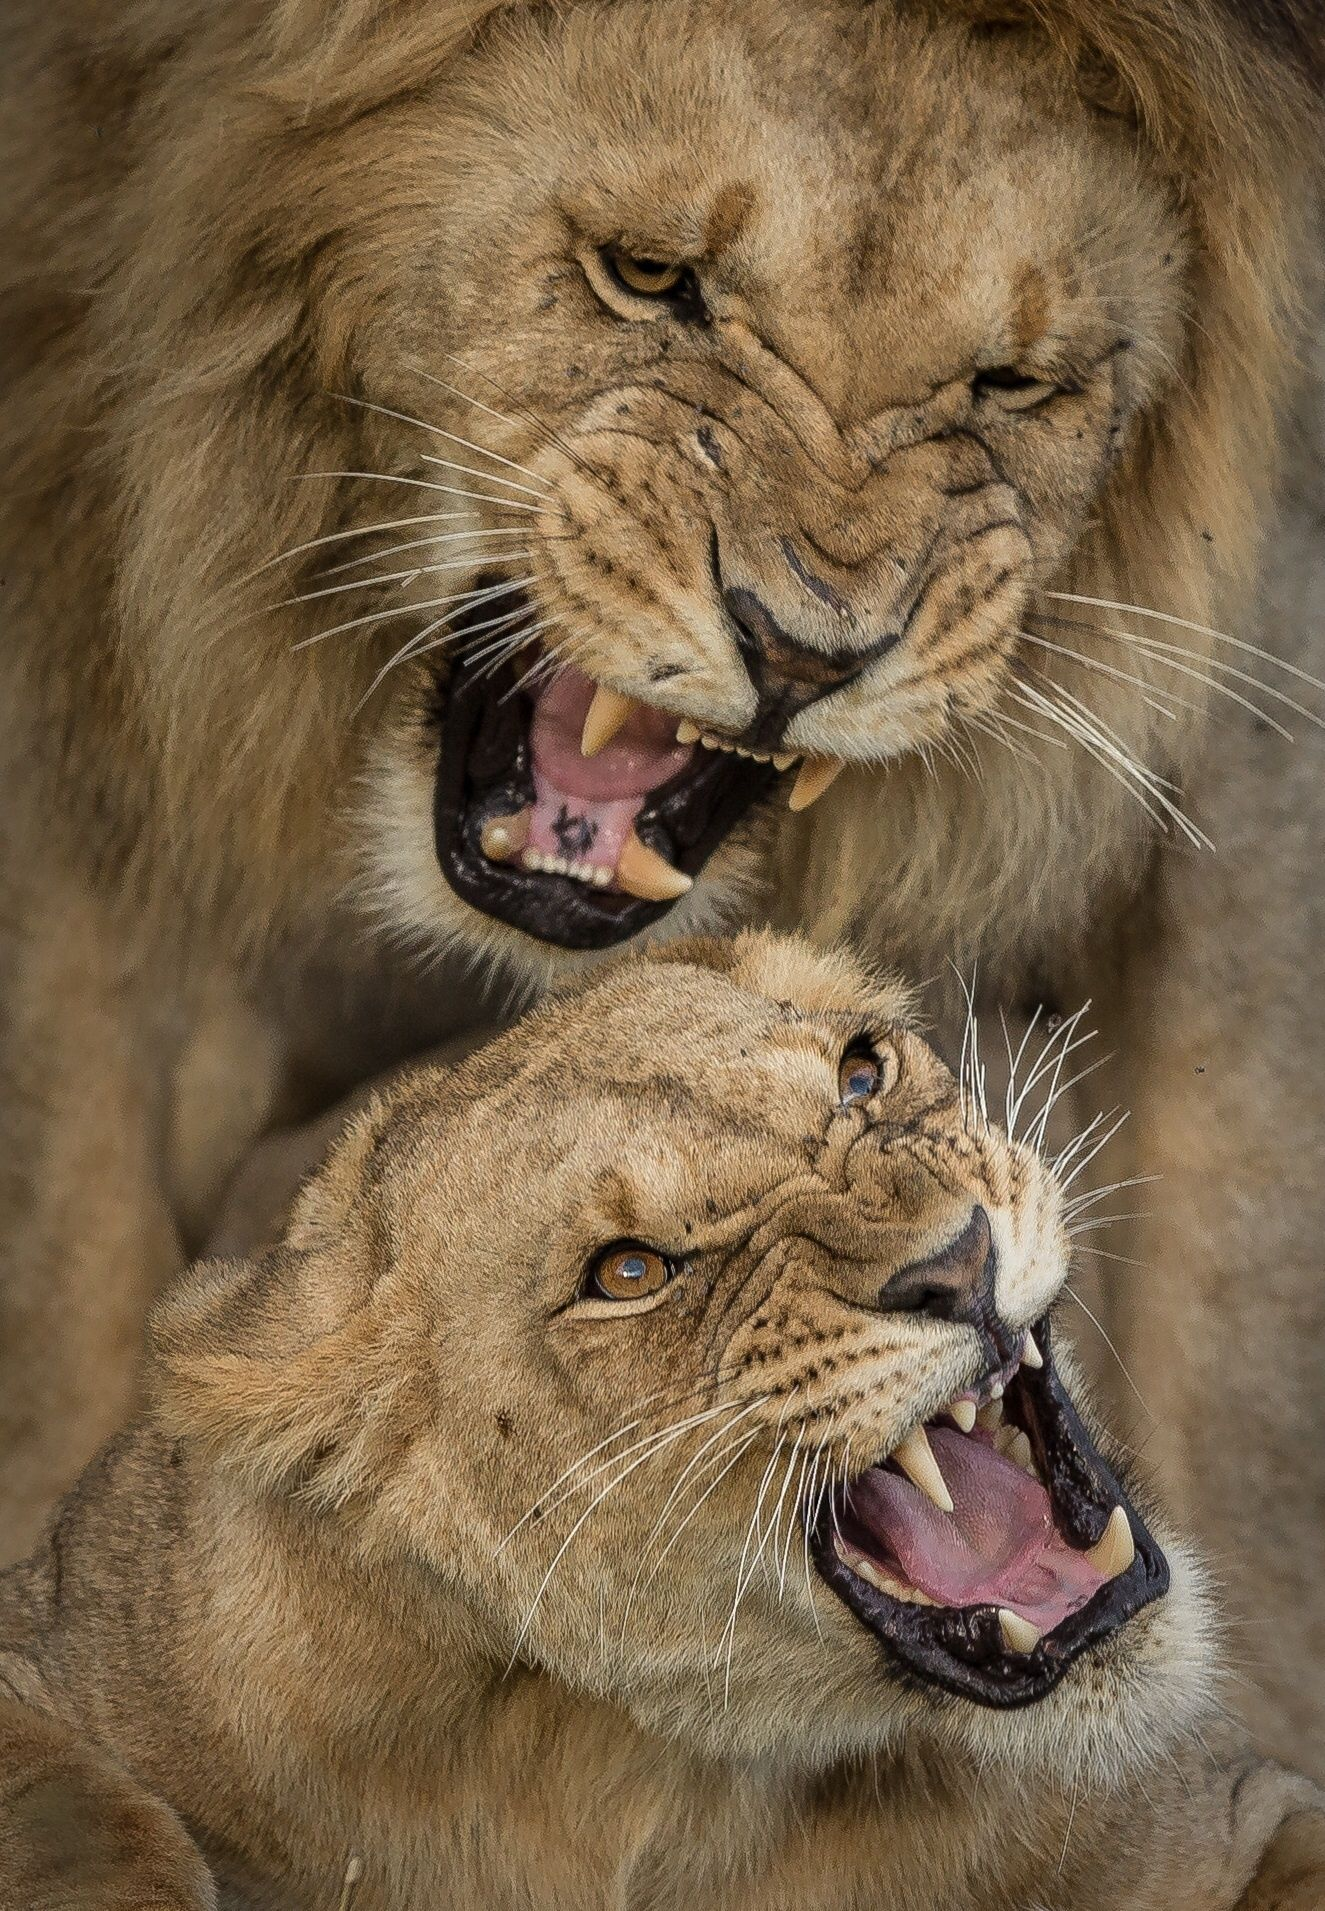 Angry Lions by Hamad Alkaabi on 500px